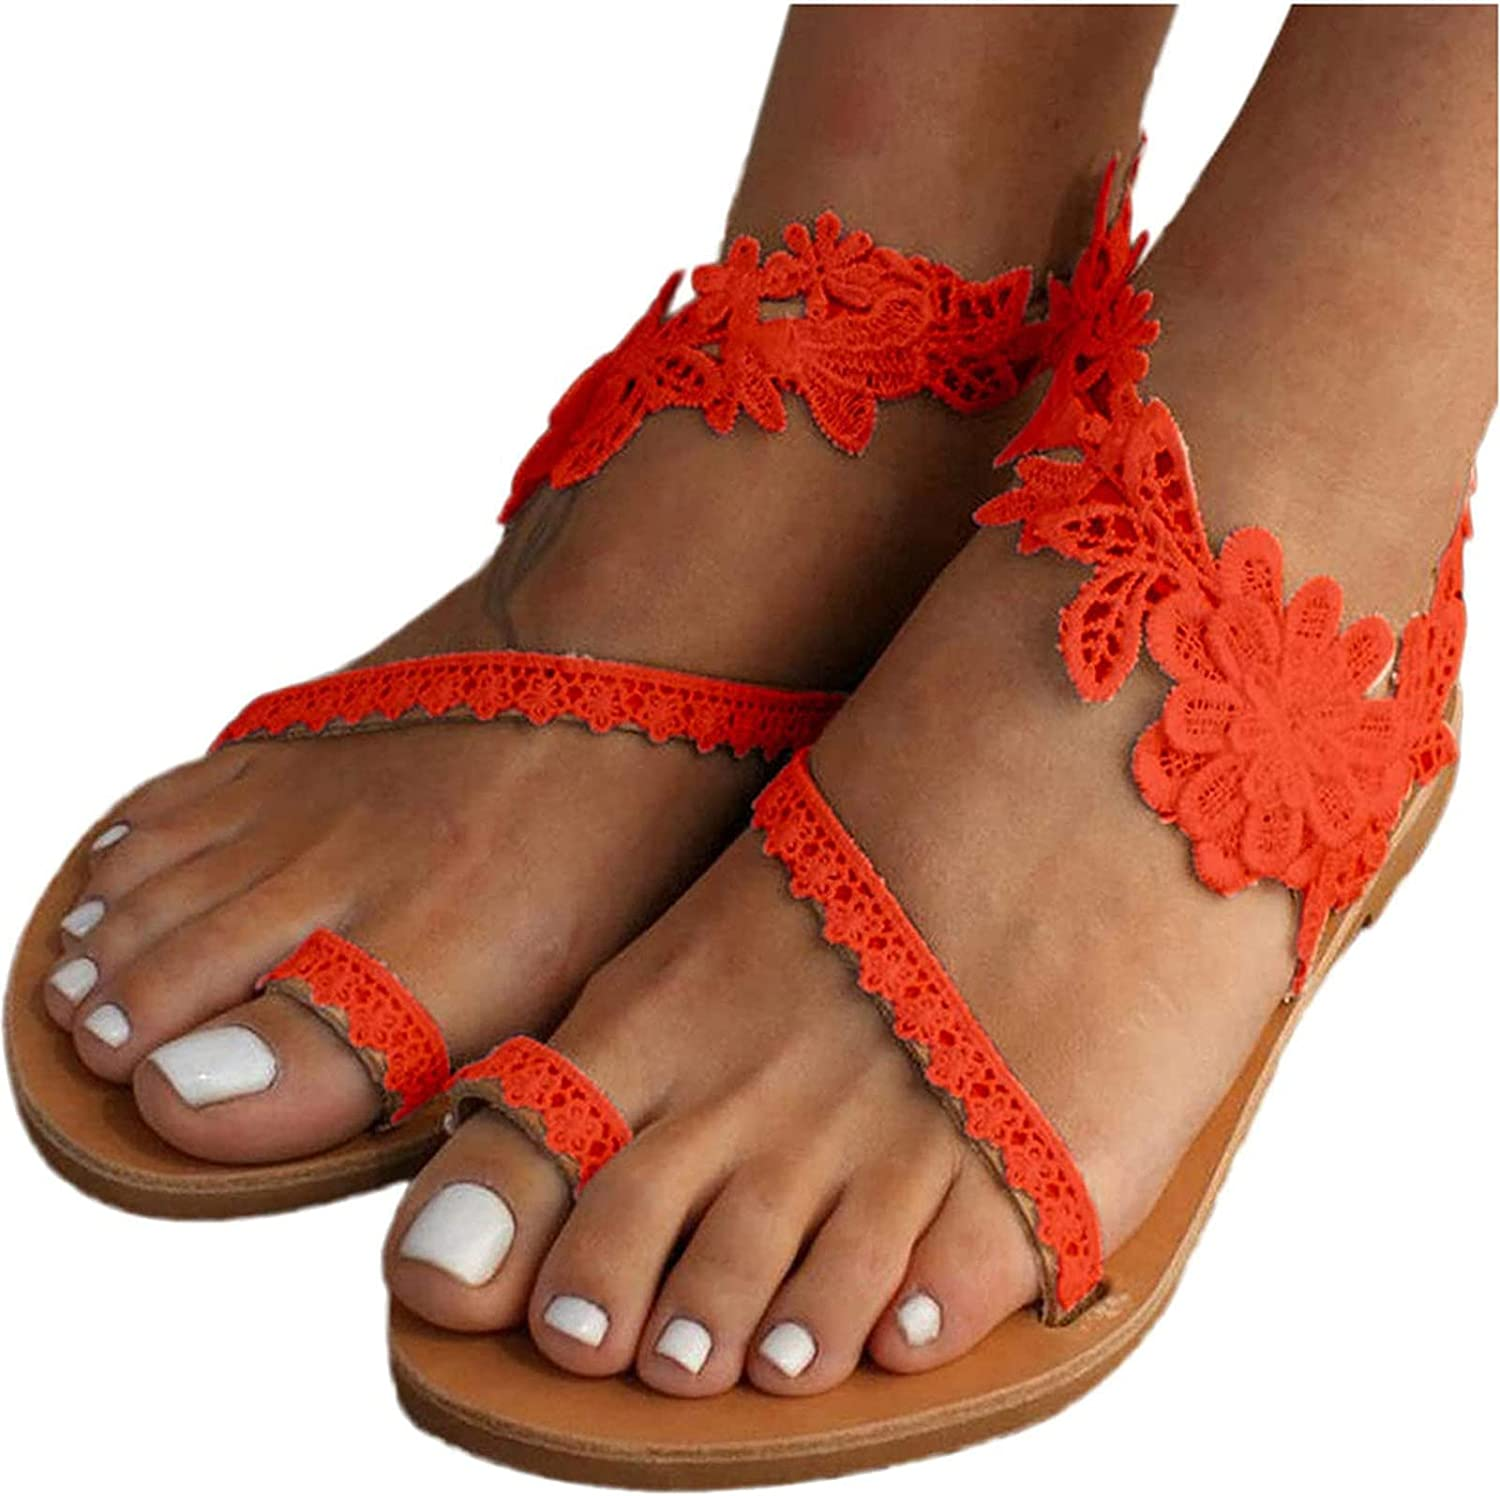 Yeslove Summer Women Casual Fixed price for sale Denver Mall Flat C Sandals Flower Ladies Fashion